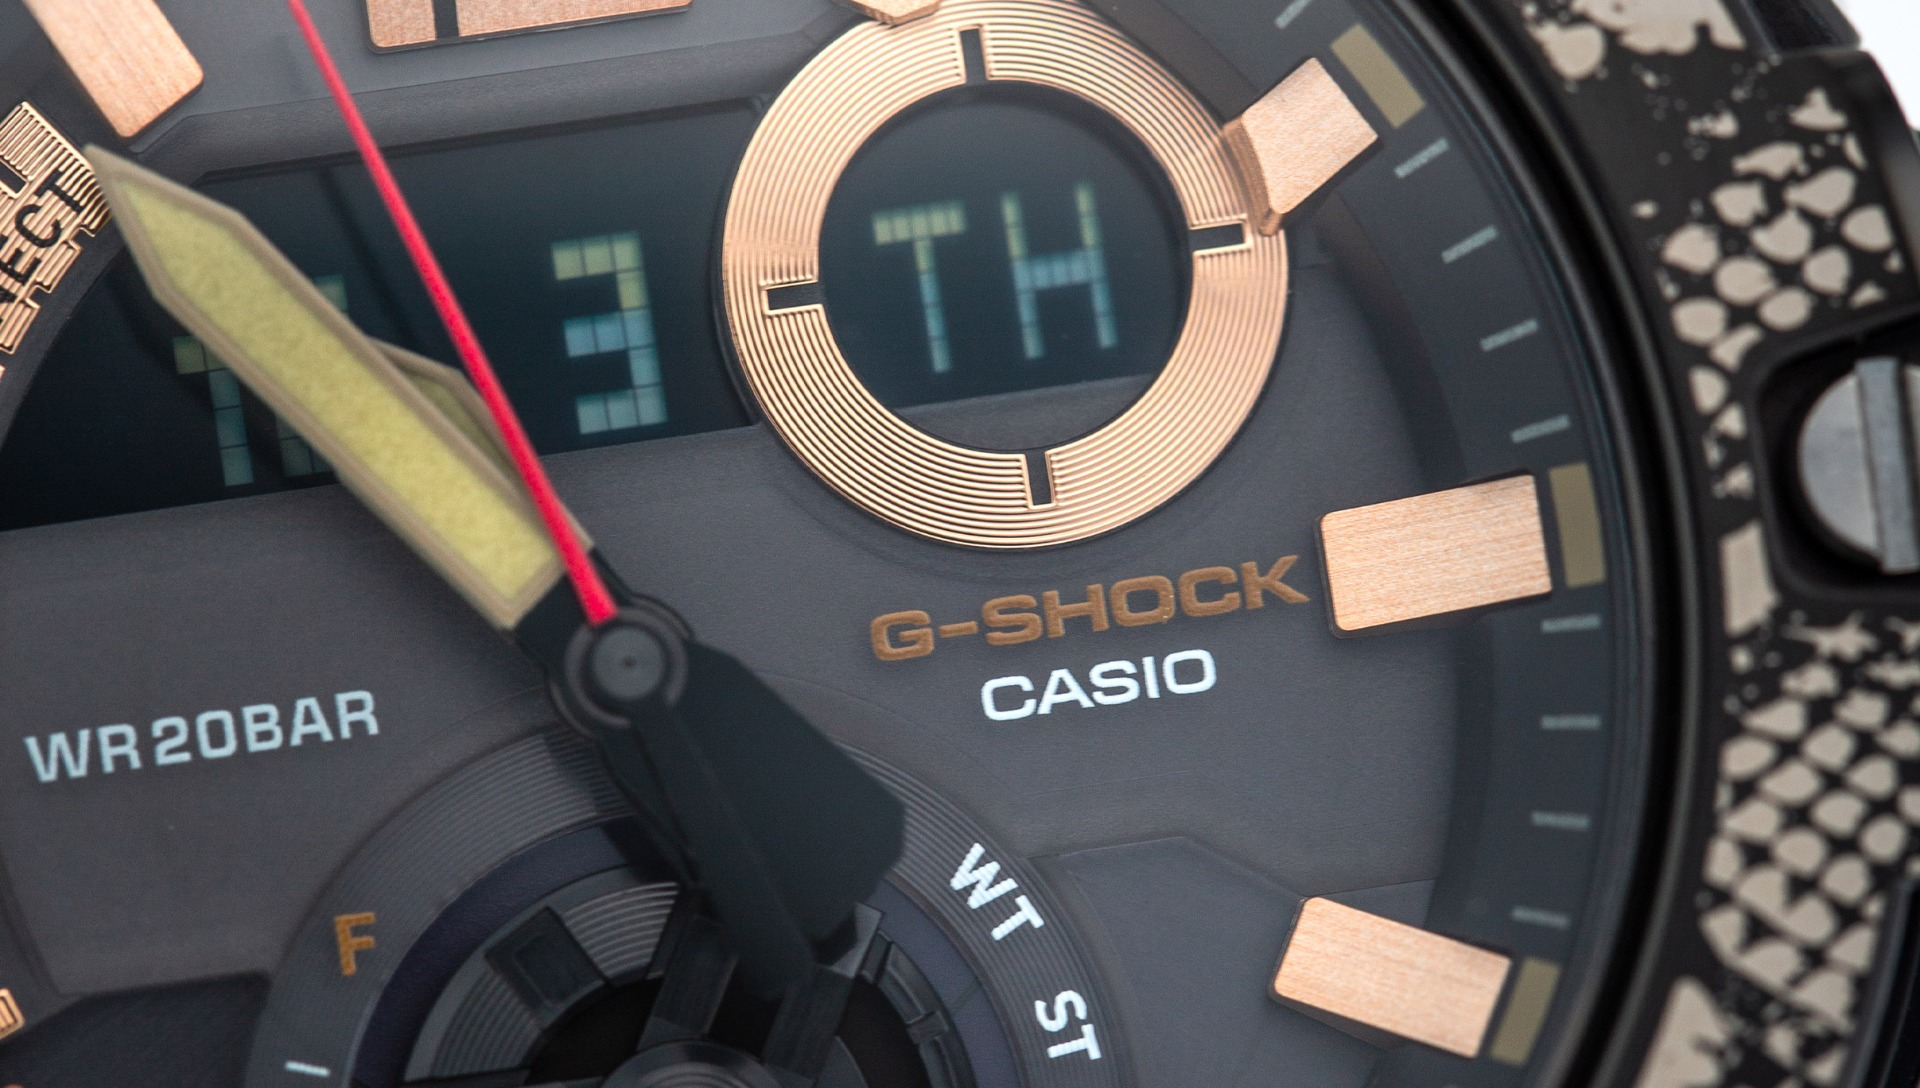 G-Shock Love The Sea And Earth Collaboration